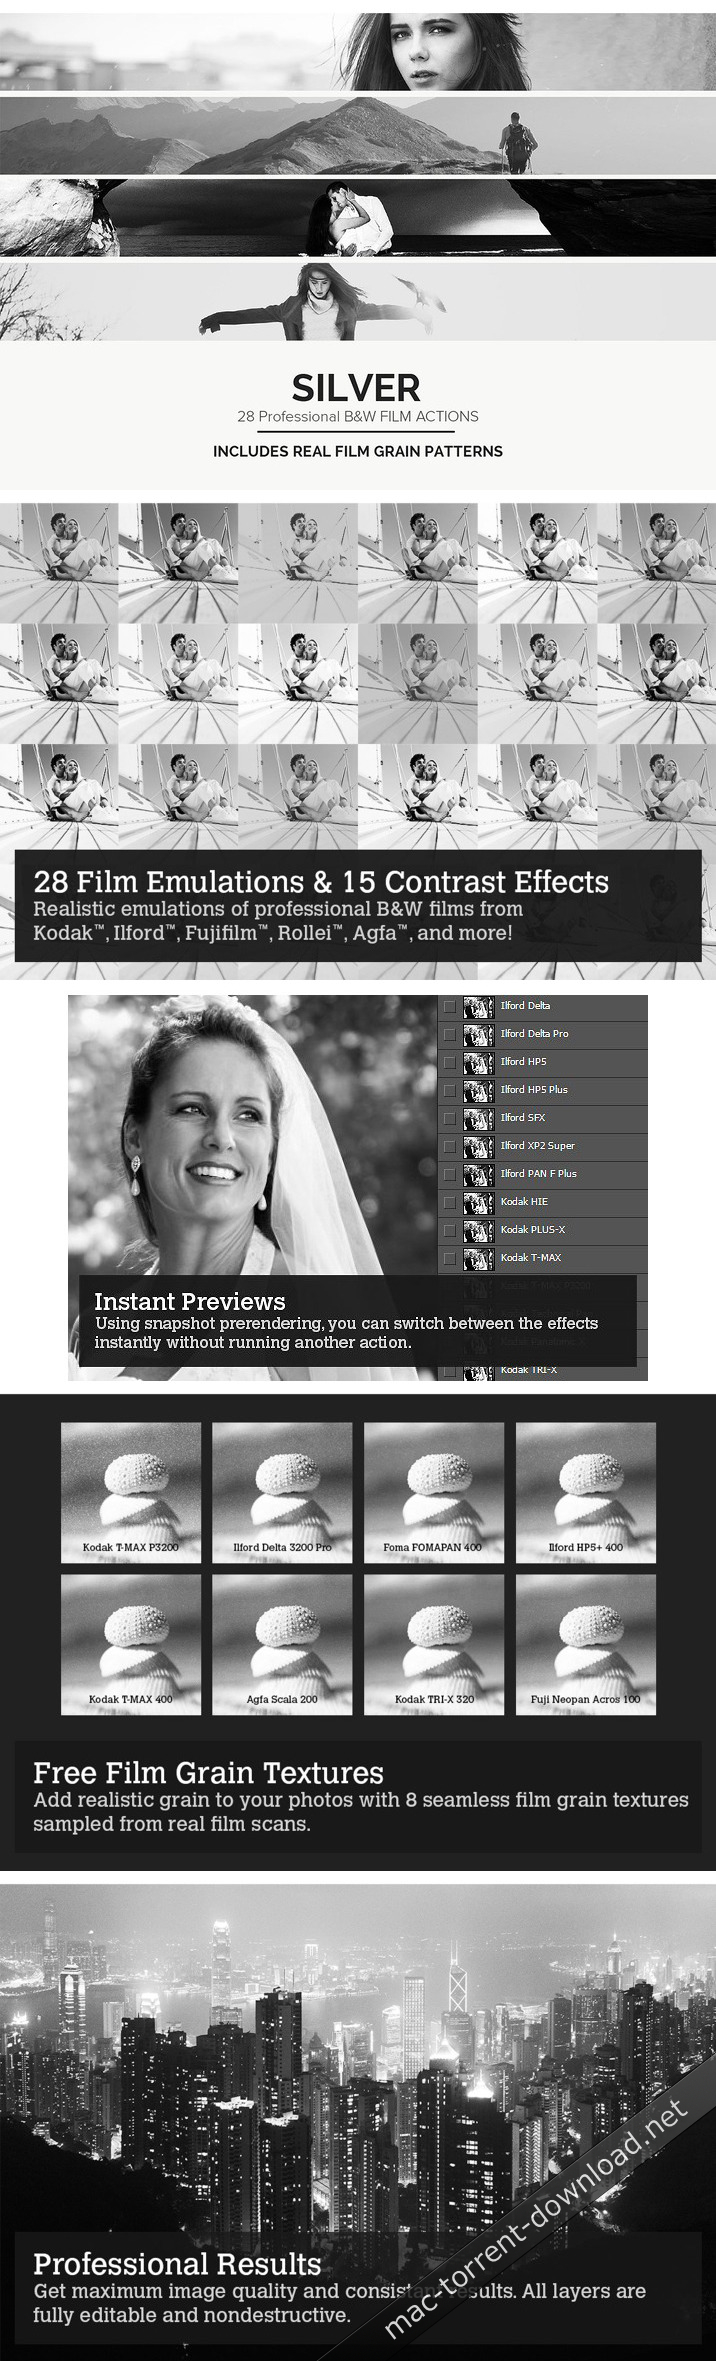 28 Real Black & White Film Emulations LUTs